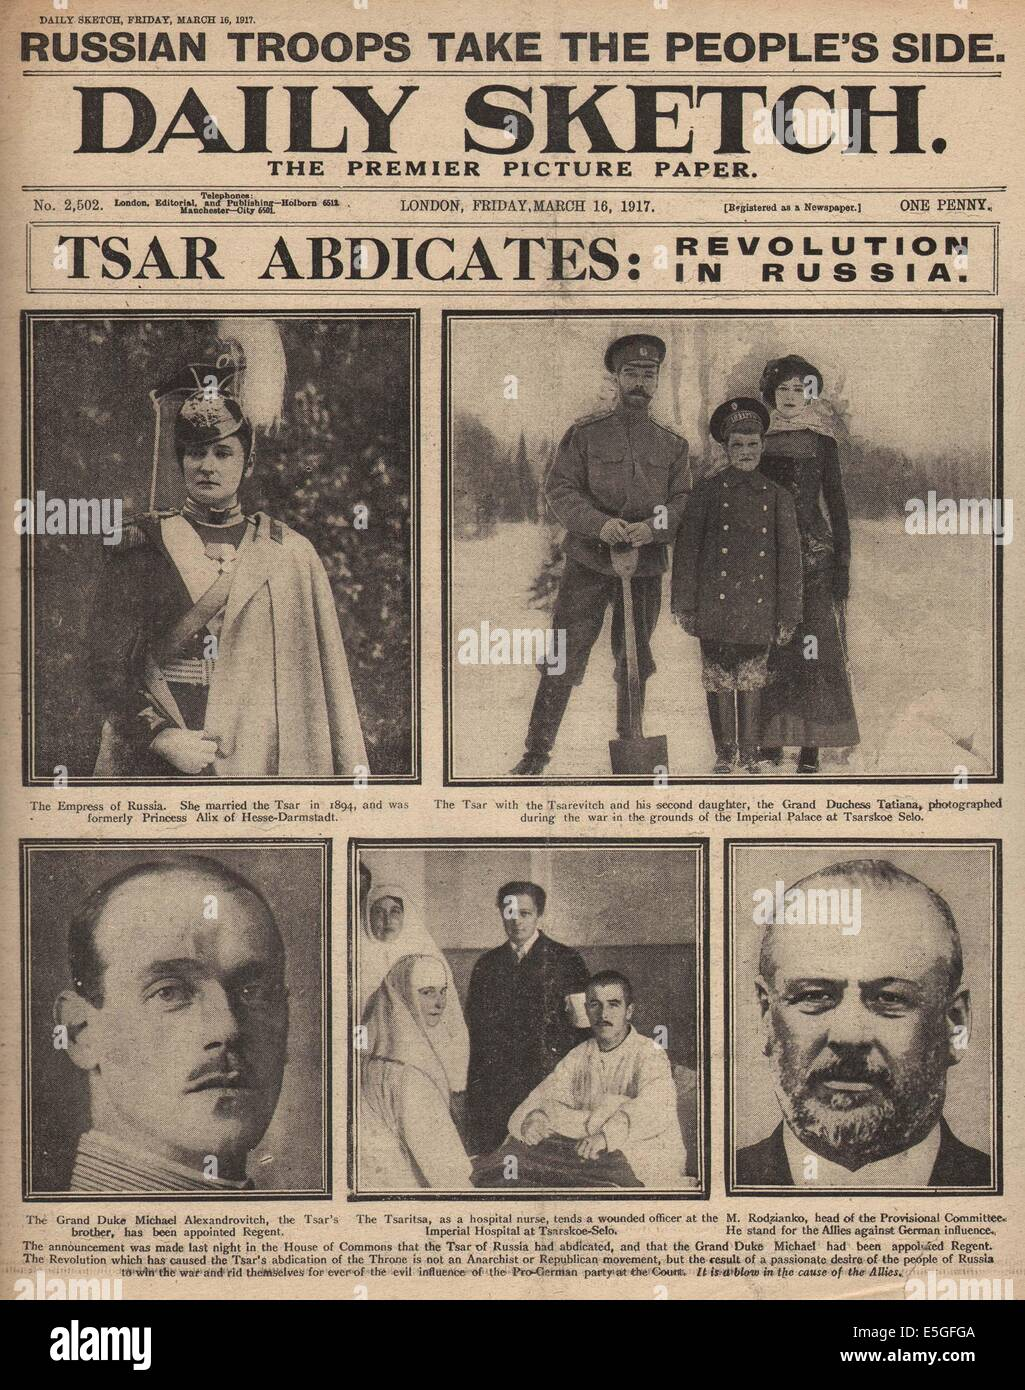 1917 Daily Sketch front page reporting Russian Revolution and Abdication of Czar Nicholas II - Stock Image